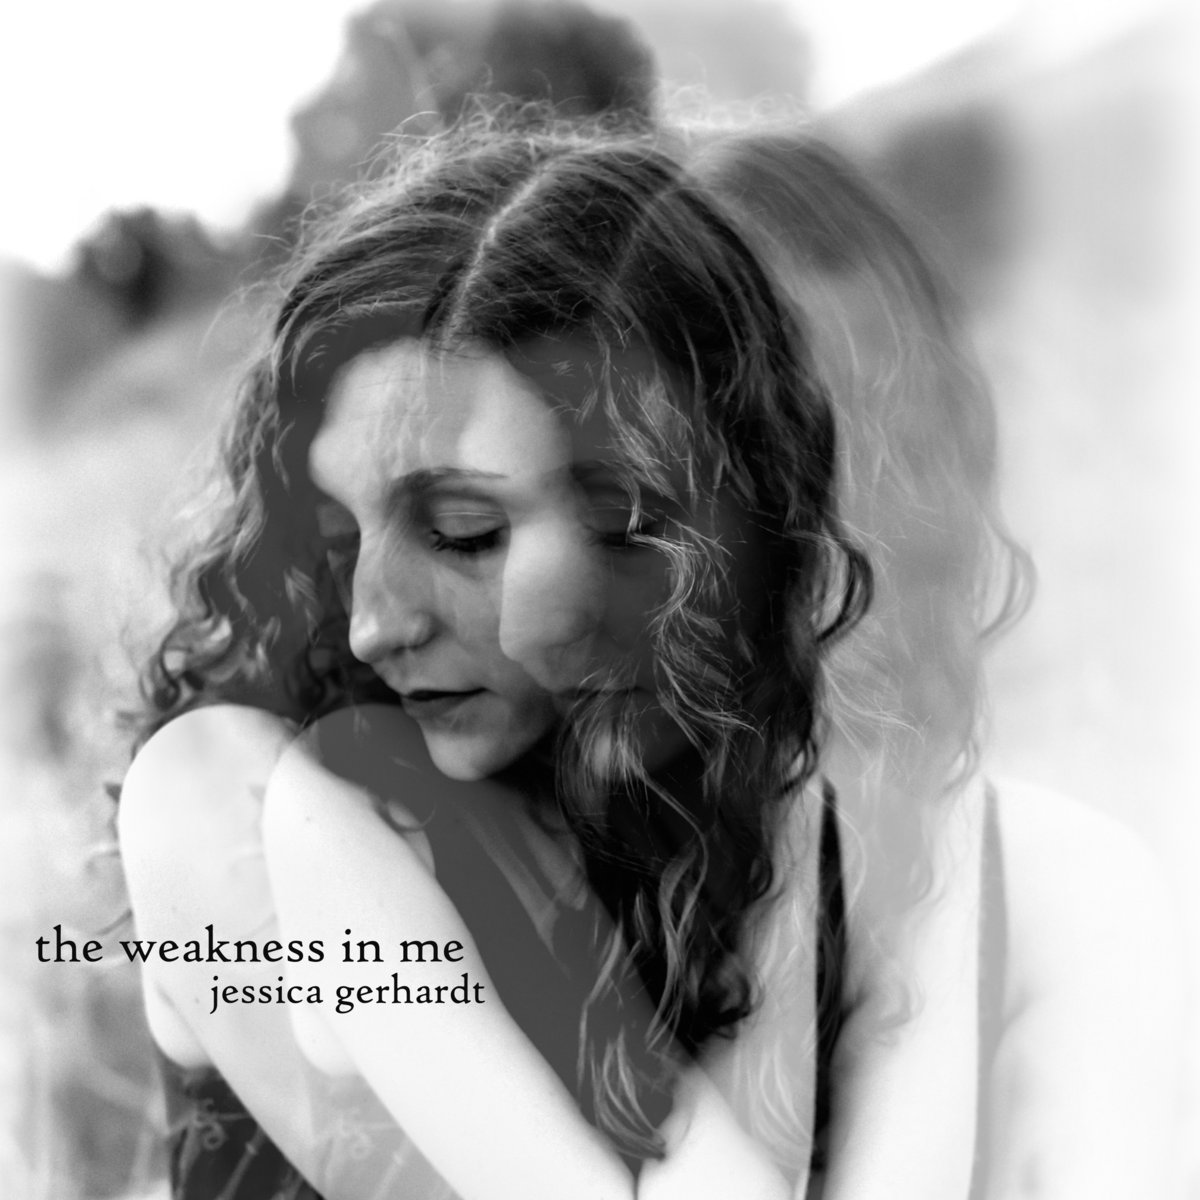 The Weakness In Me by Jessica Gerhardt